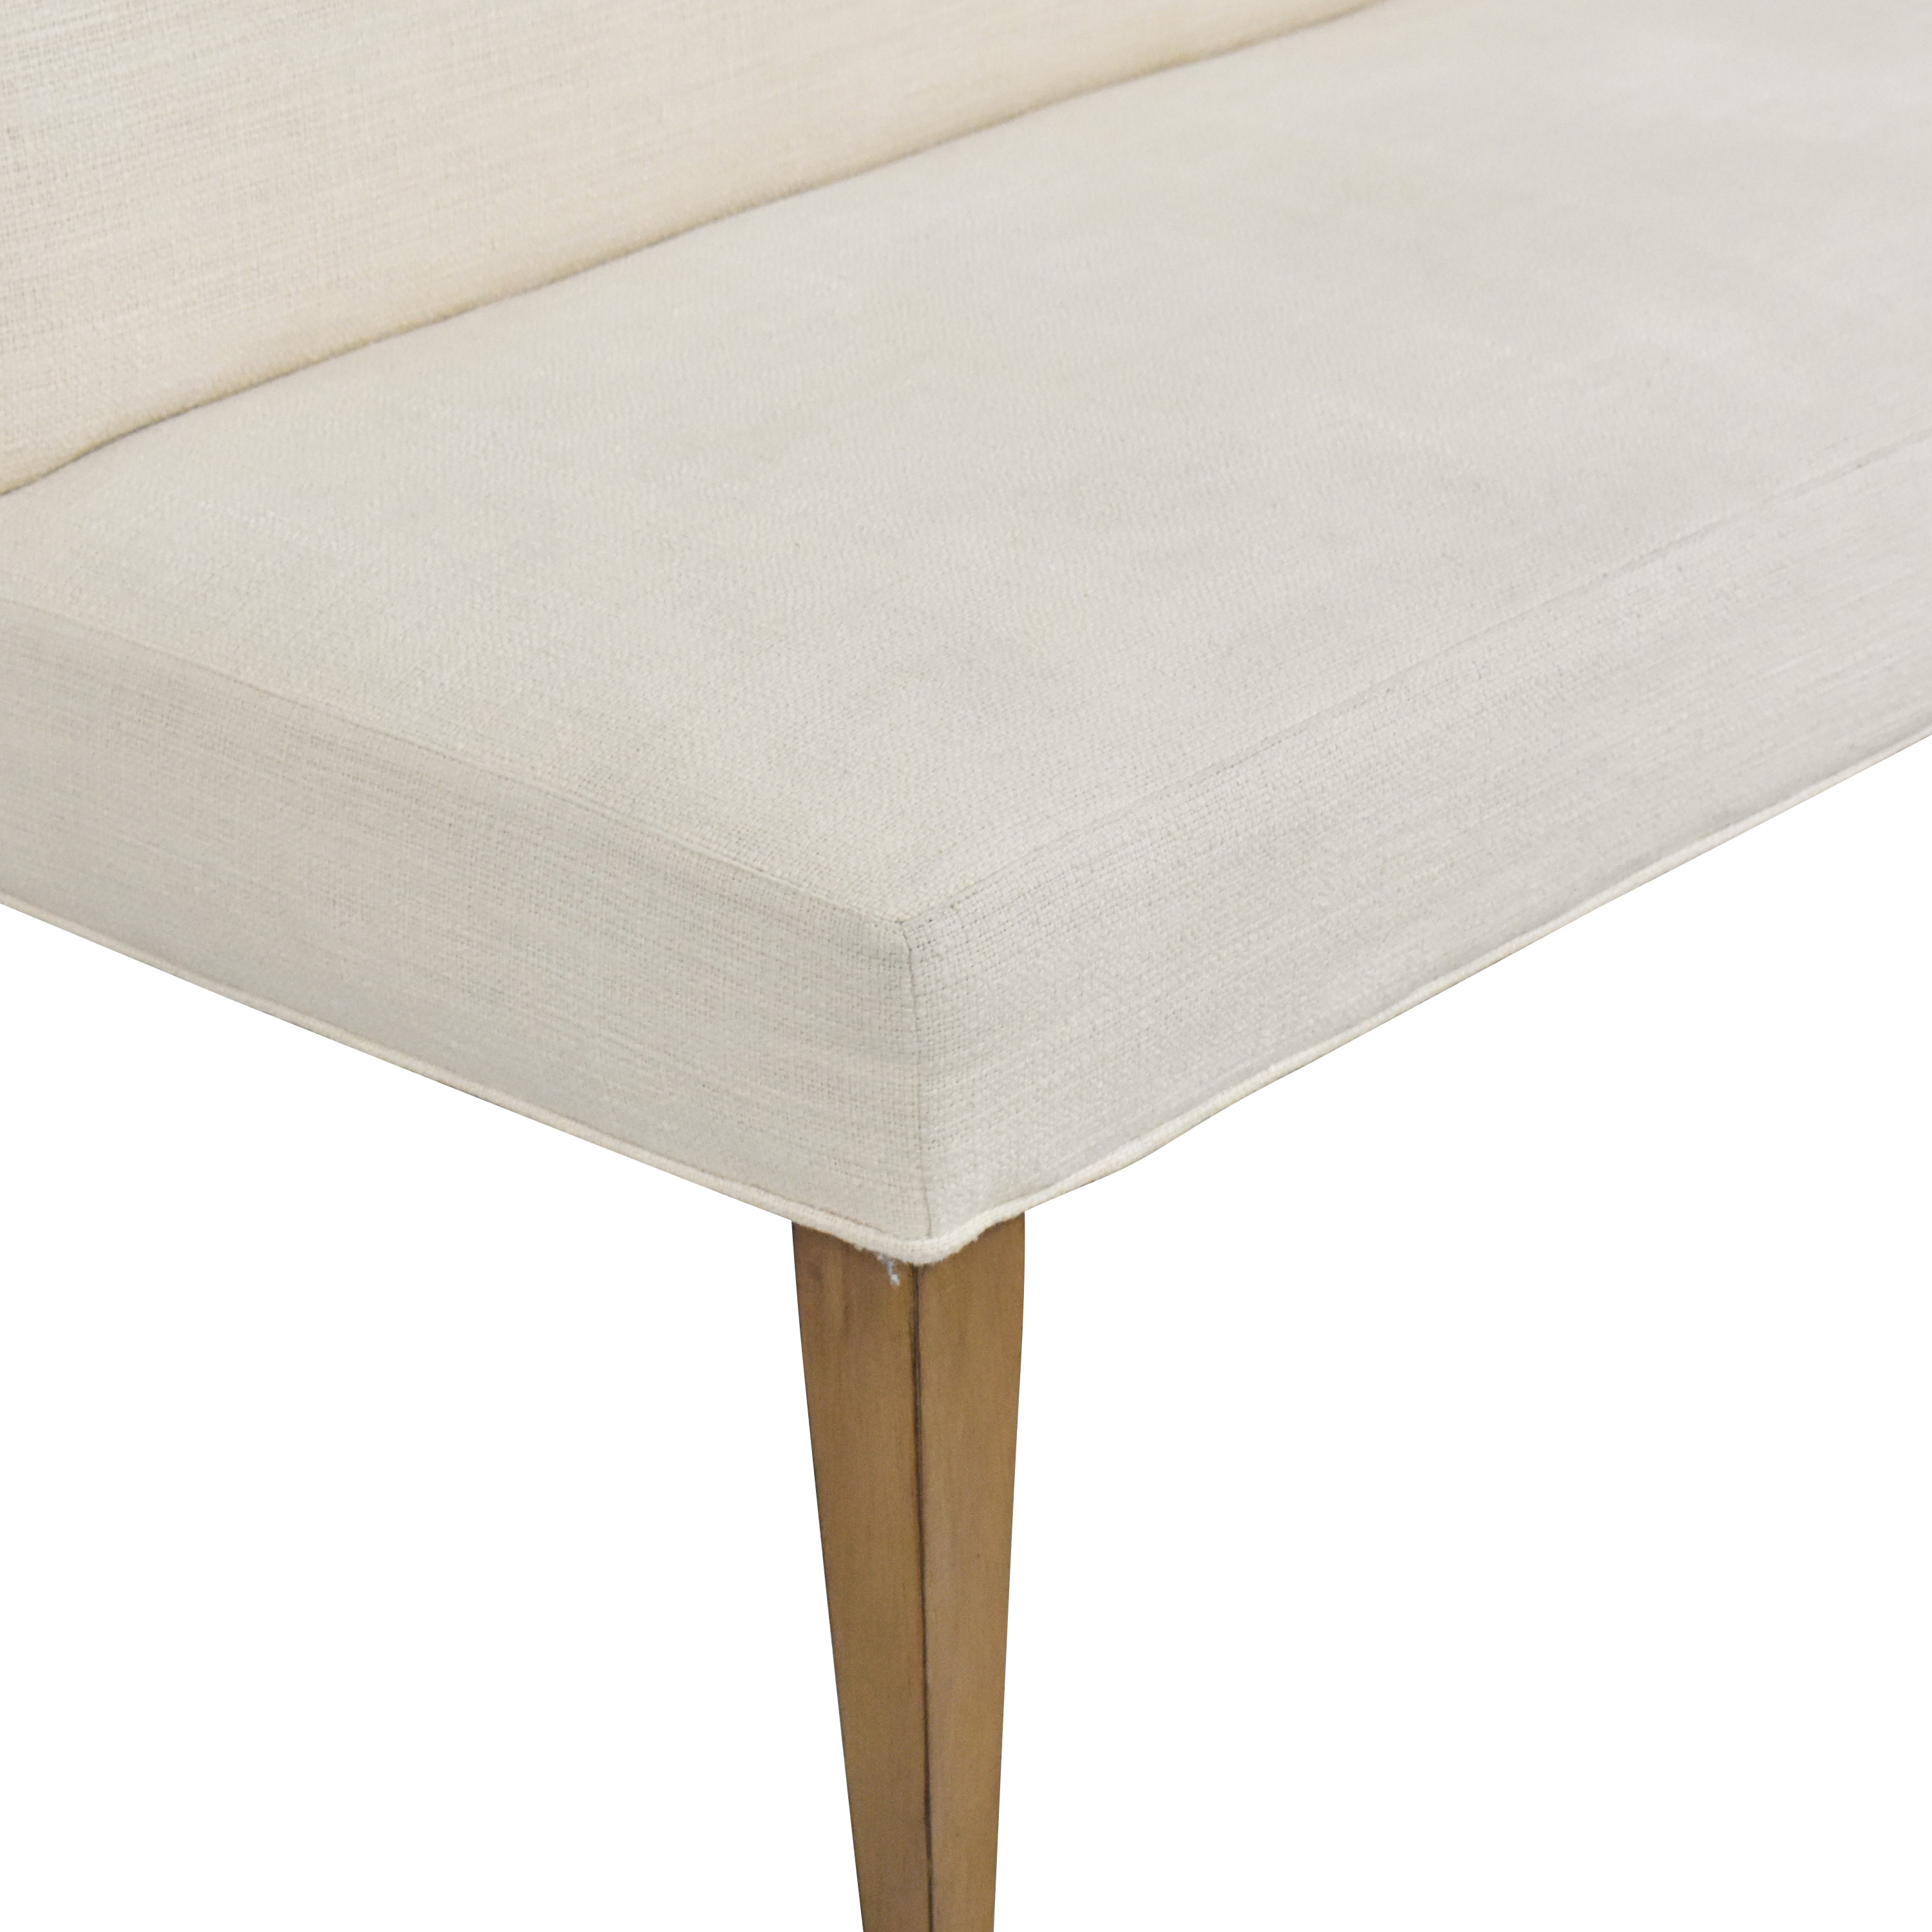 Serena & Lily Ross Dining Bench / Chairs